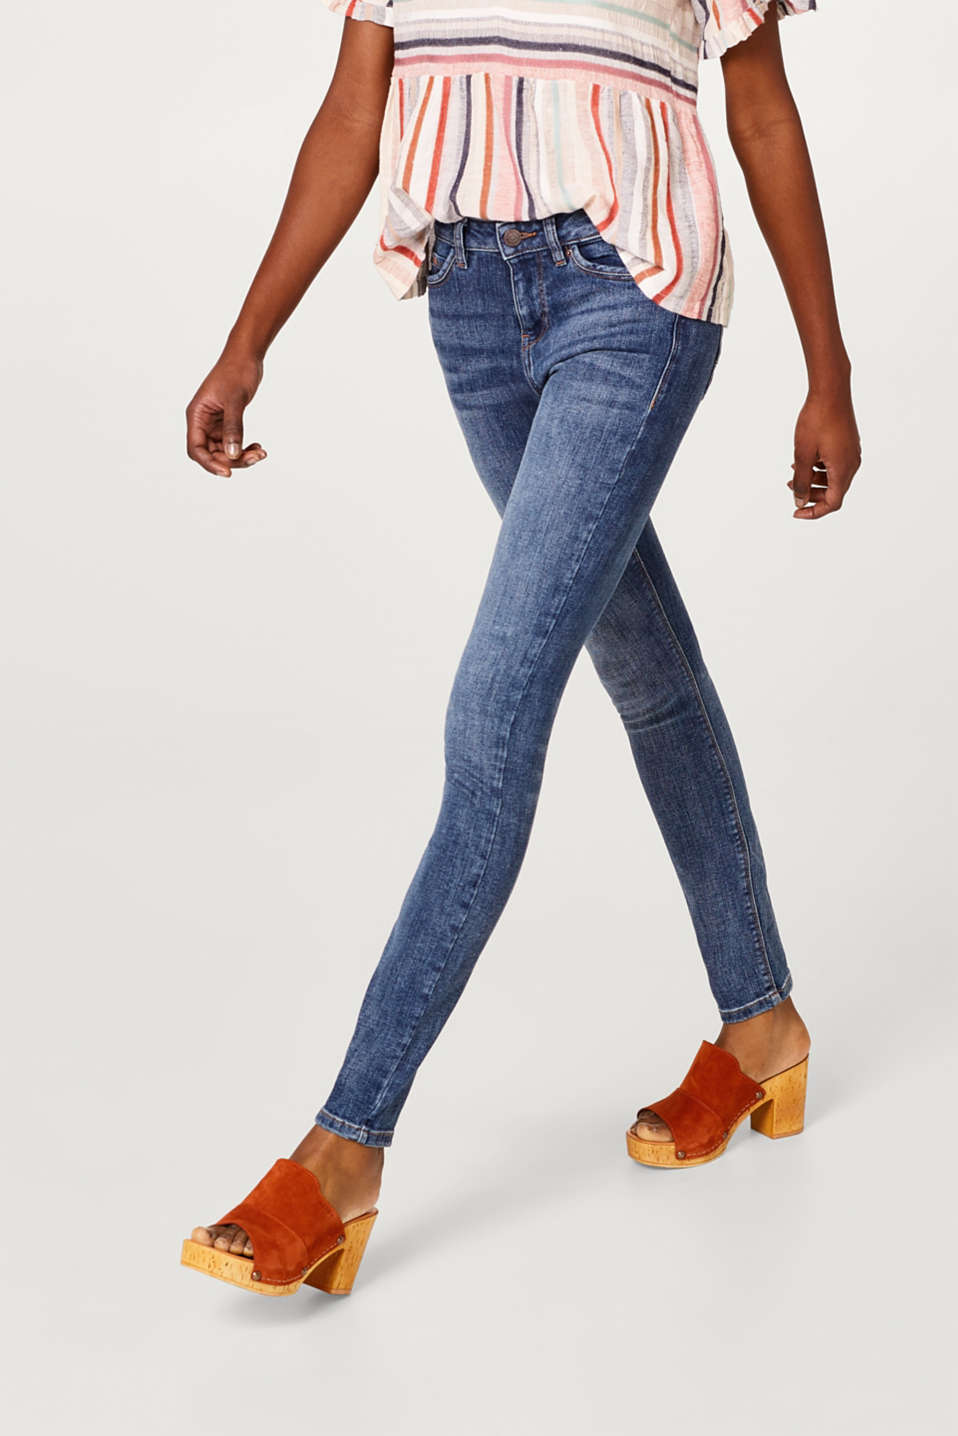 Esprit - Vintage-effect stretch jeans in organic cotton